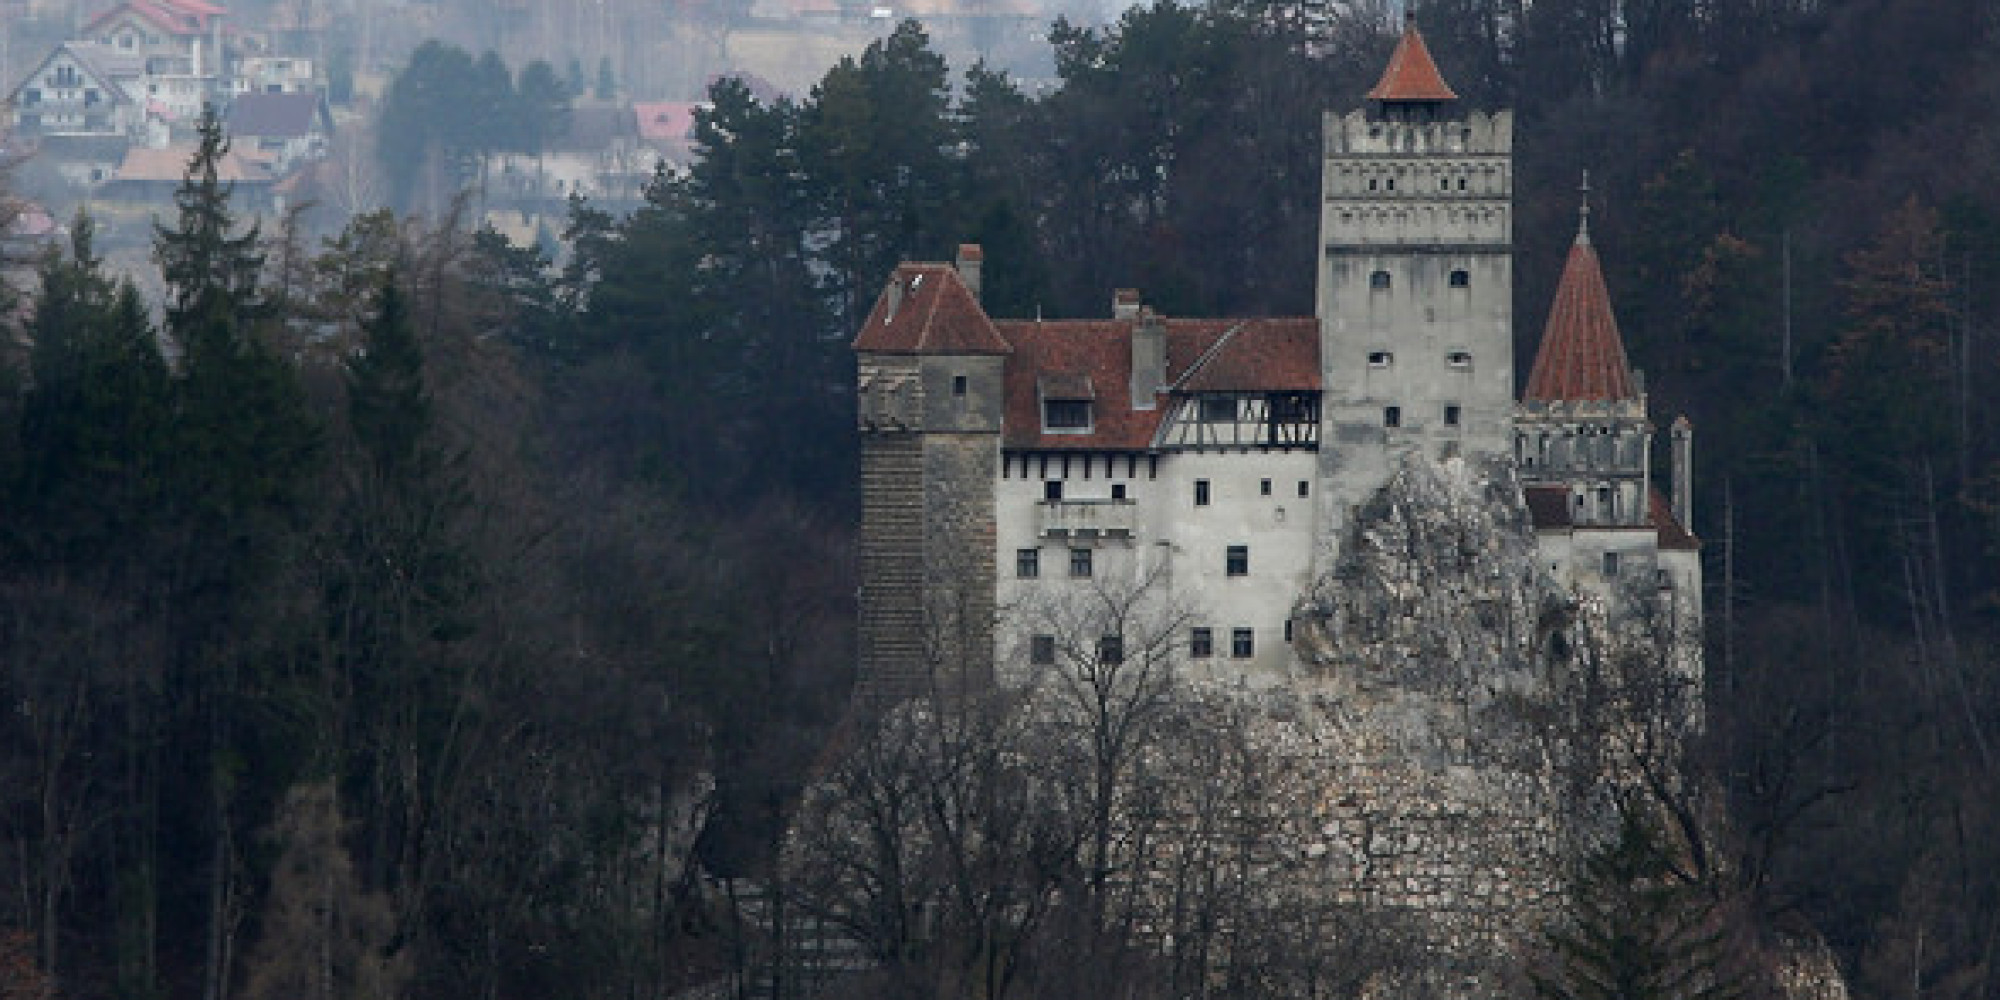 Dracula's Castle For Sale For The Right (But Undisclosed) Price ...